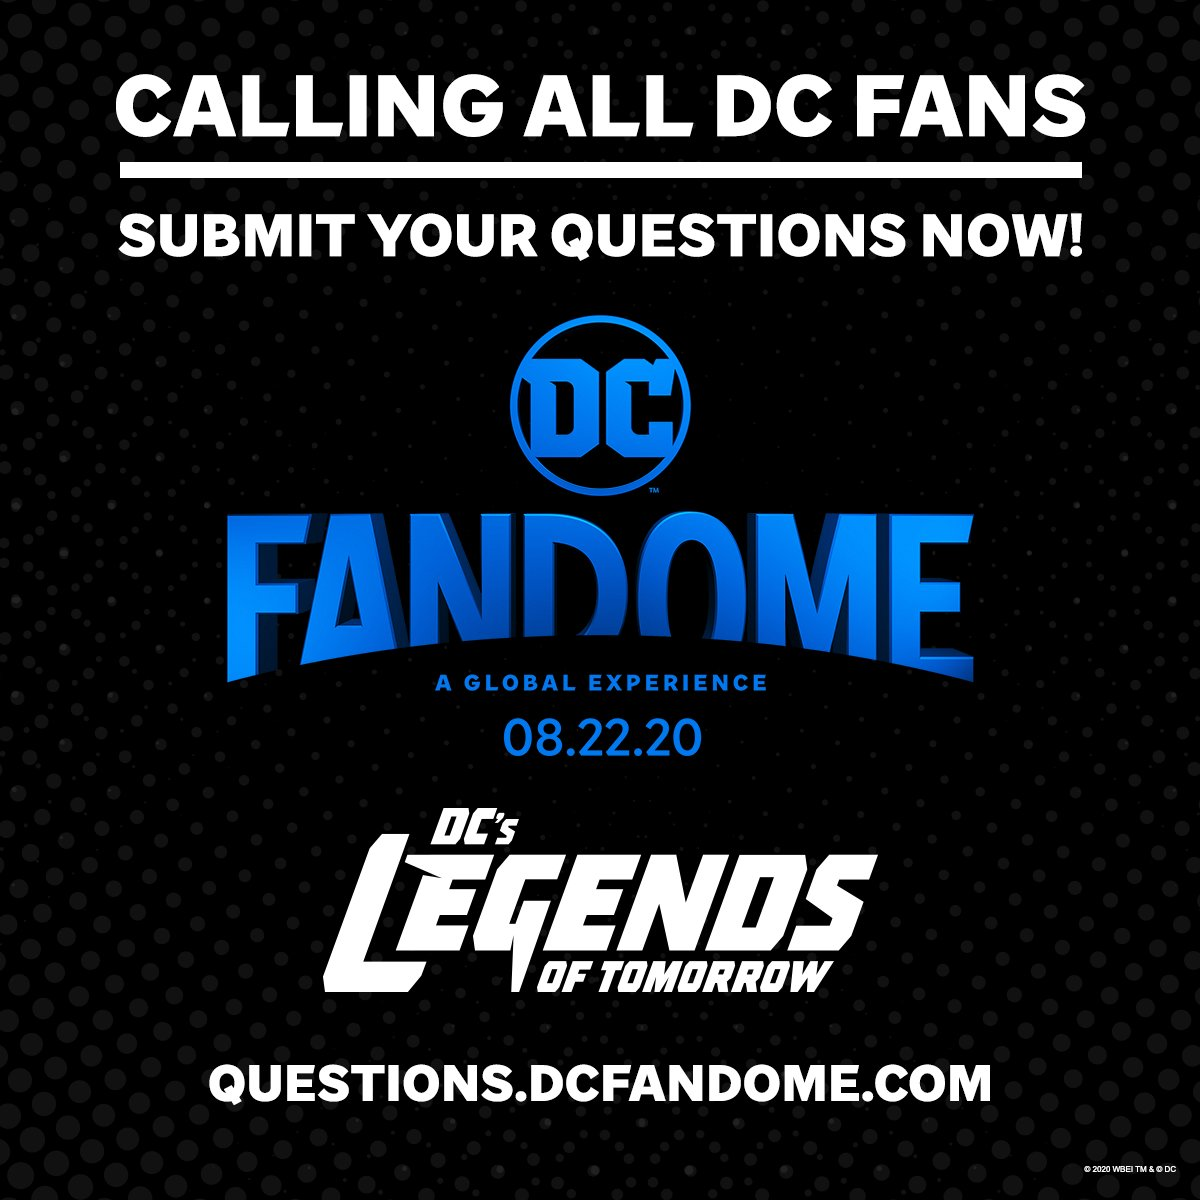 You've got questions! We've got answers. Submit your questions now about the DC Multiverse, and see if they're answered during #DCFanDome: https://t.co/aH1eNfHwaq https://t.co/CPE8YZwSAc